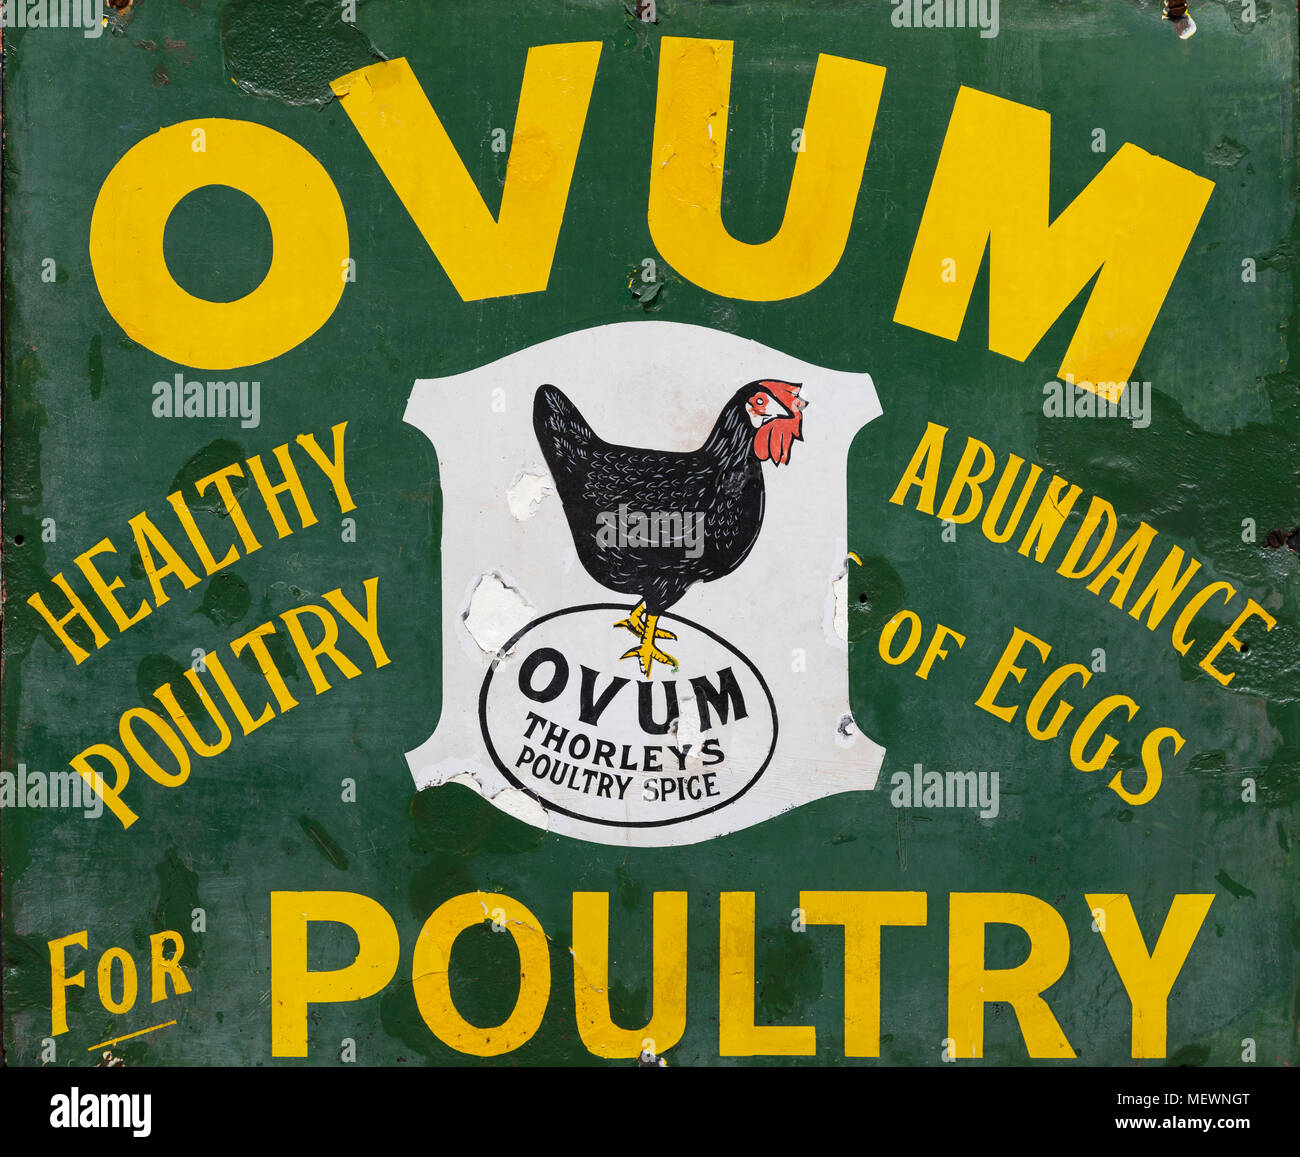 An old metal advertising sign for Ovum Poultry Spice - England, circa 1913. - Stock Image